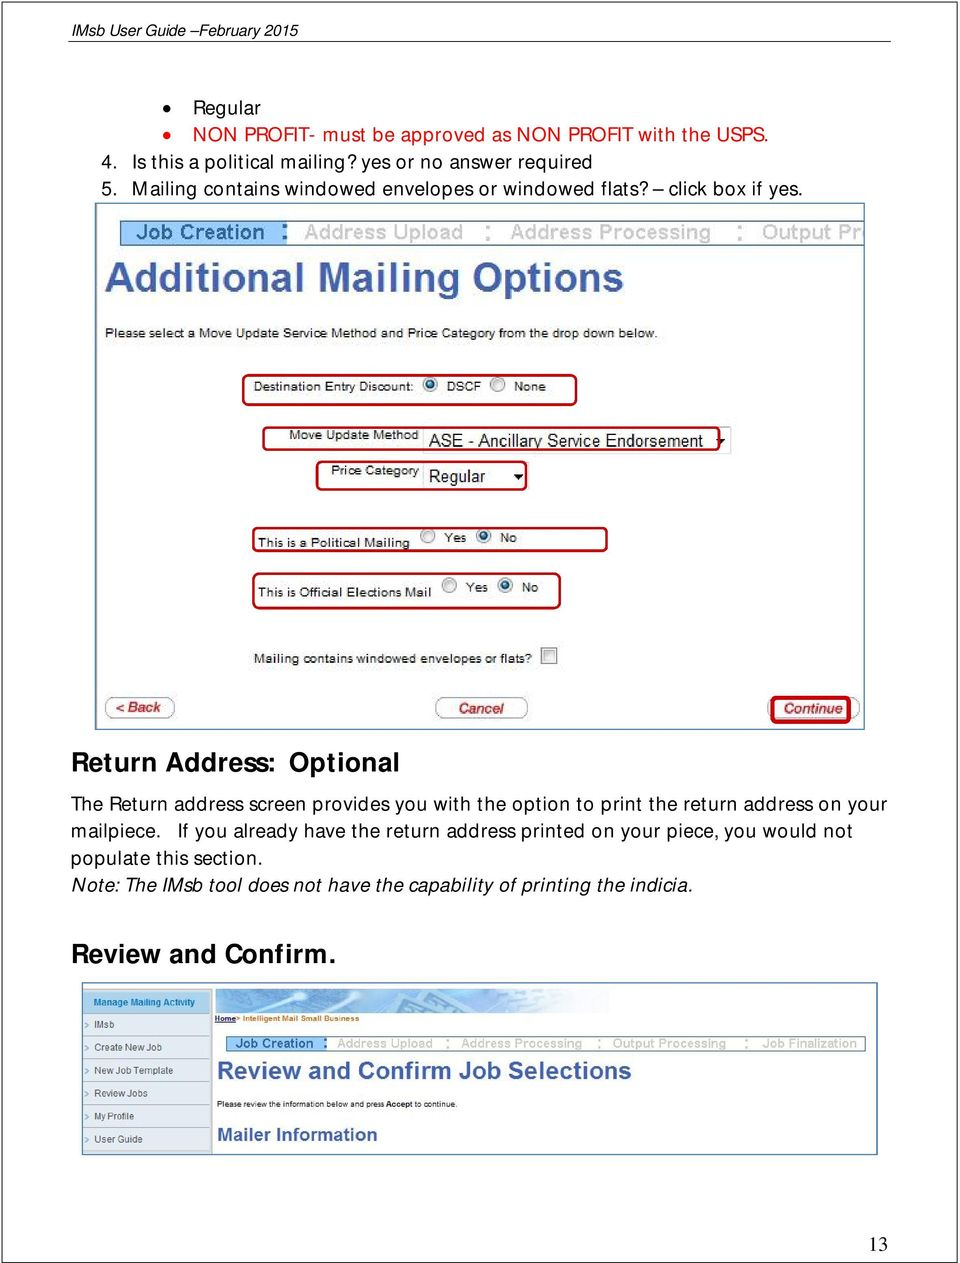 Return Address: Optional The Return address screen provides you with the option to print the return address on your mailpiece.